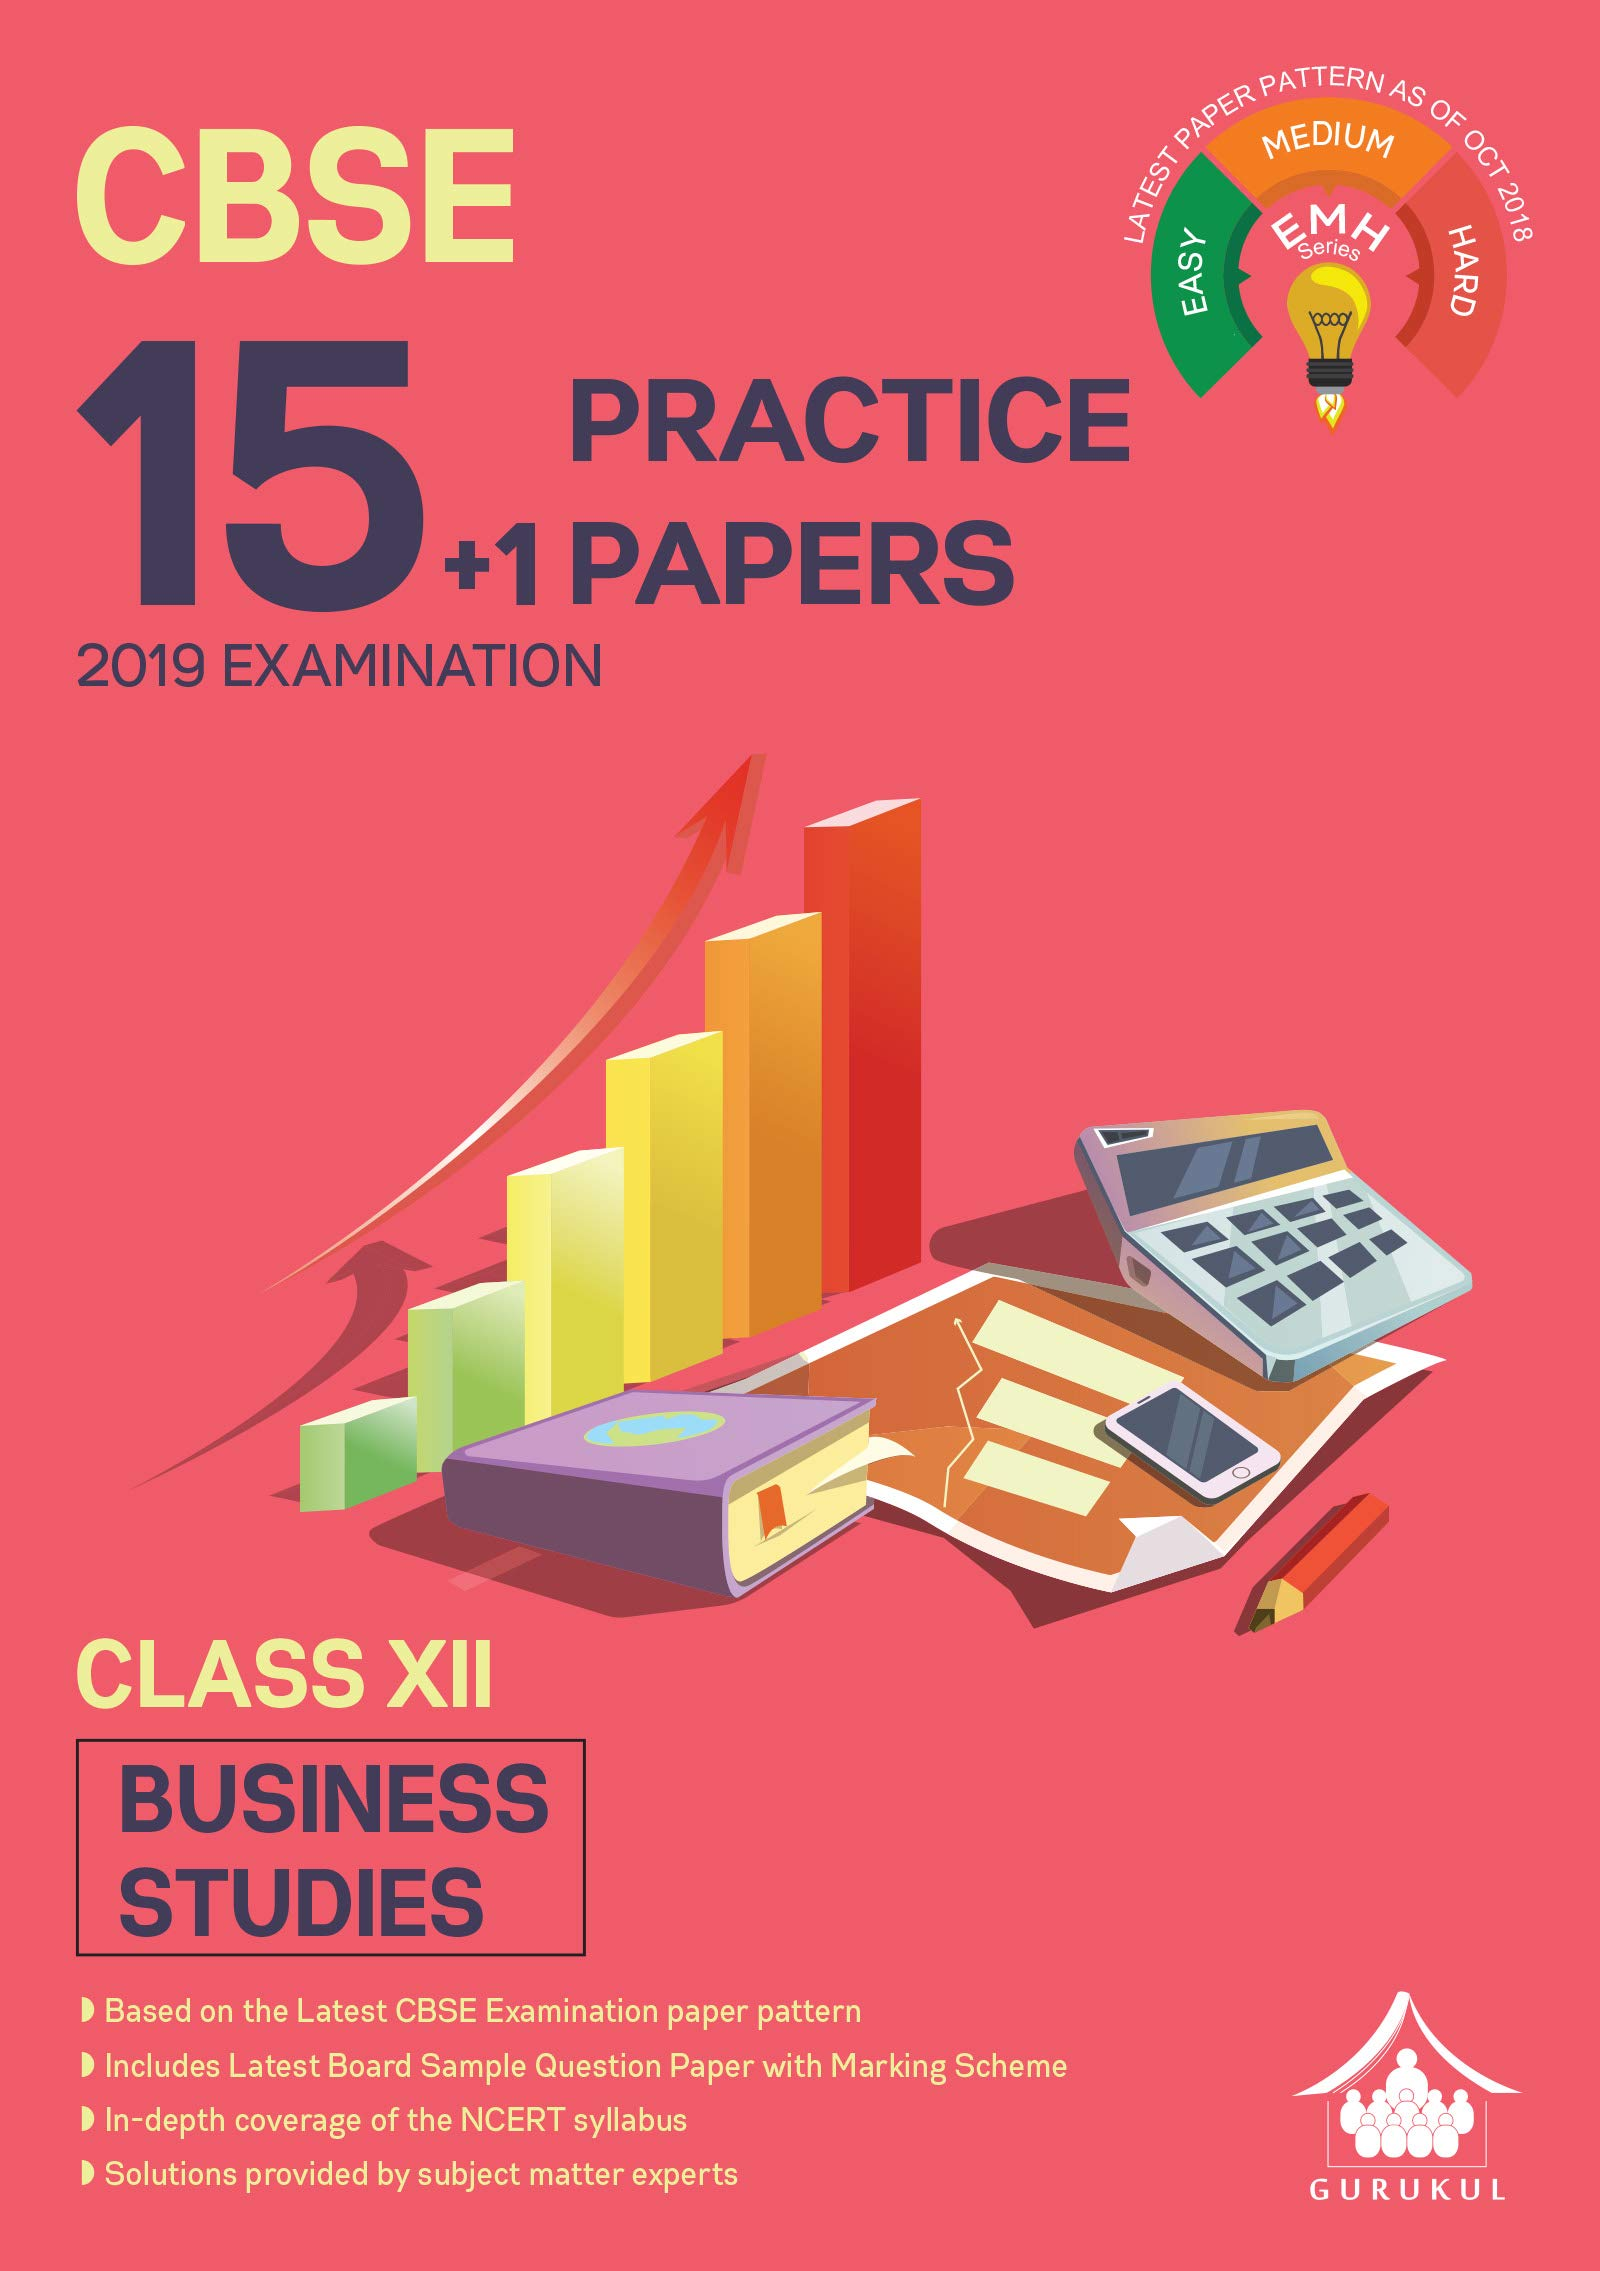 15+1 Practice Papers - Business Studies : CBSE Class 12 for 2019 Examination